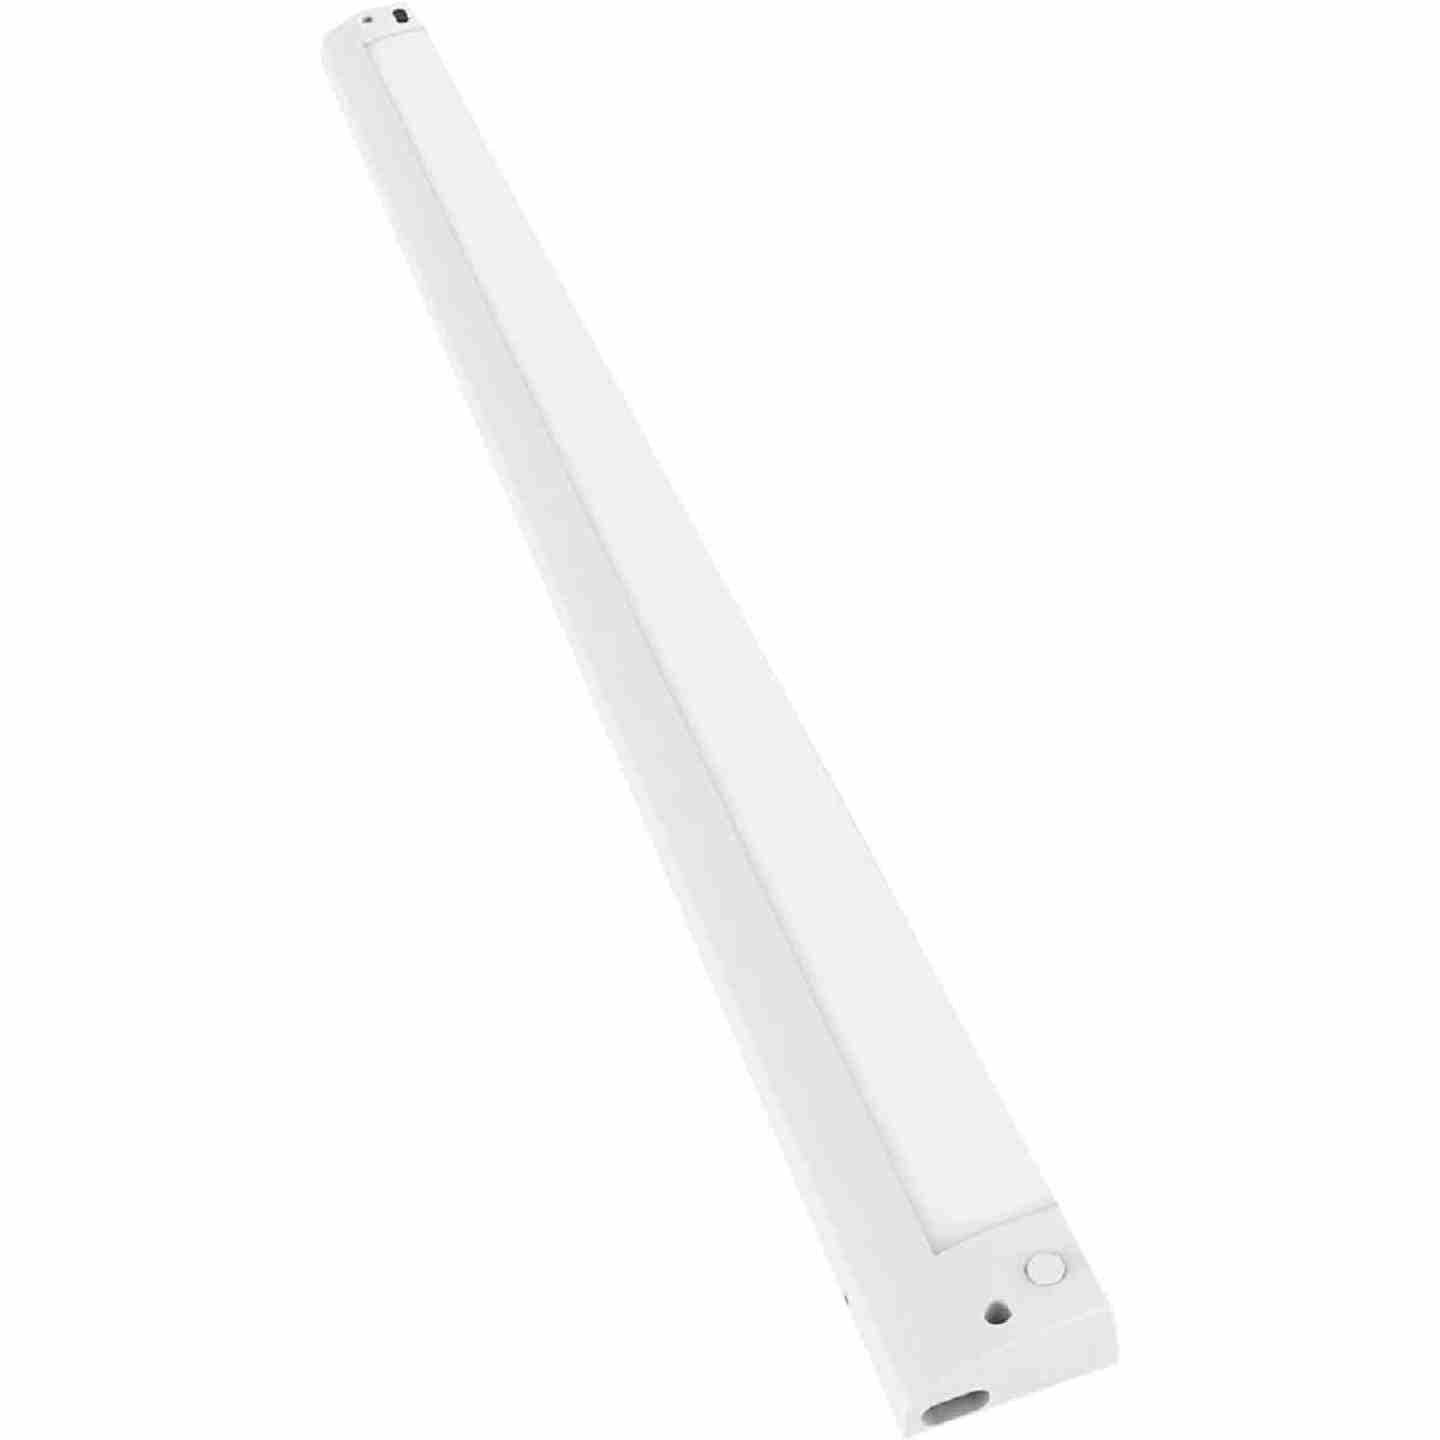 Good Earth Lighting 24 In. Plug-In White LED Color Temperature Changing Under Cabinet Light Image 1